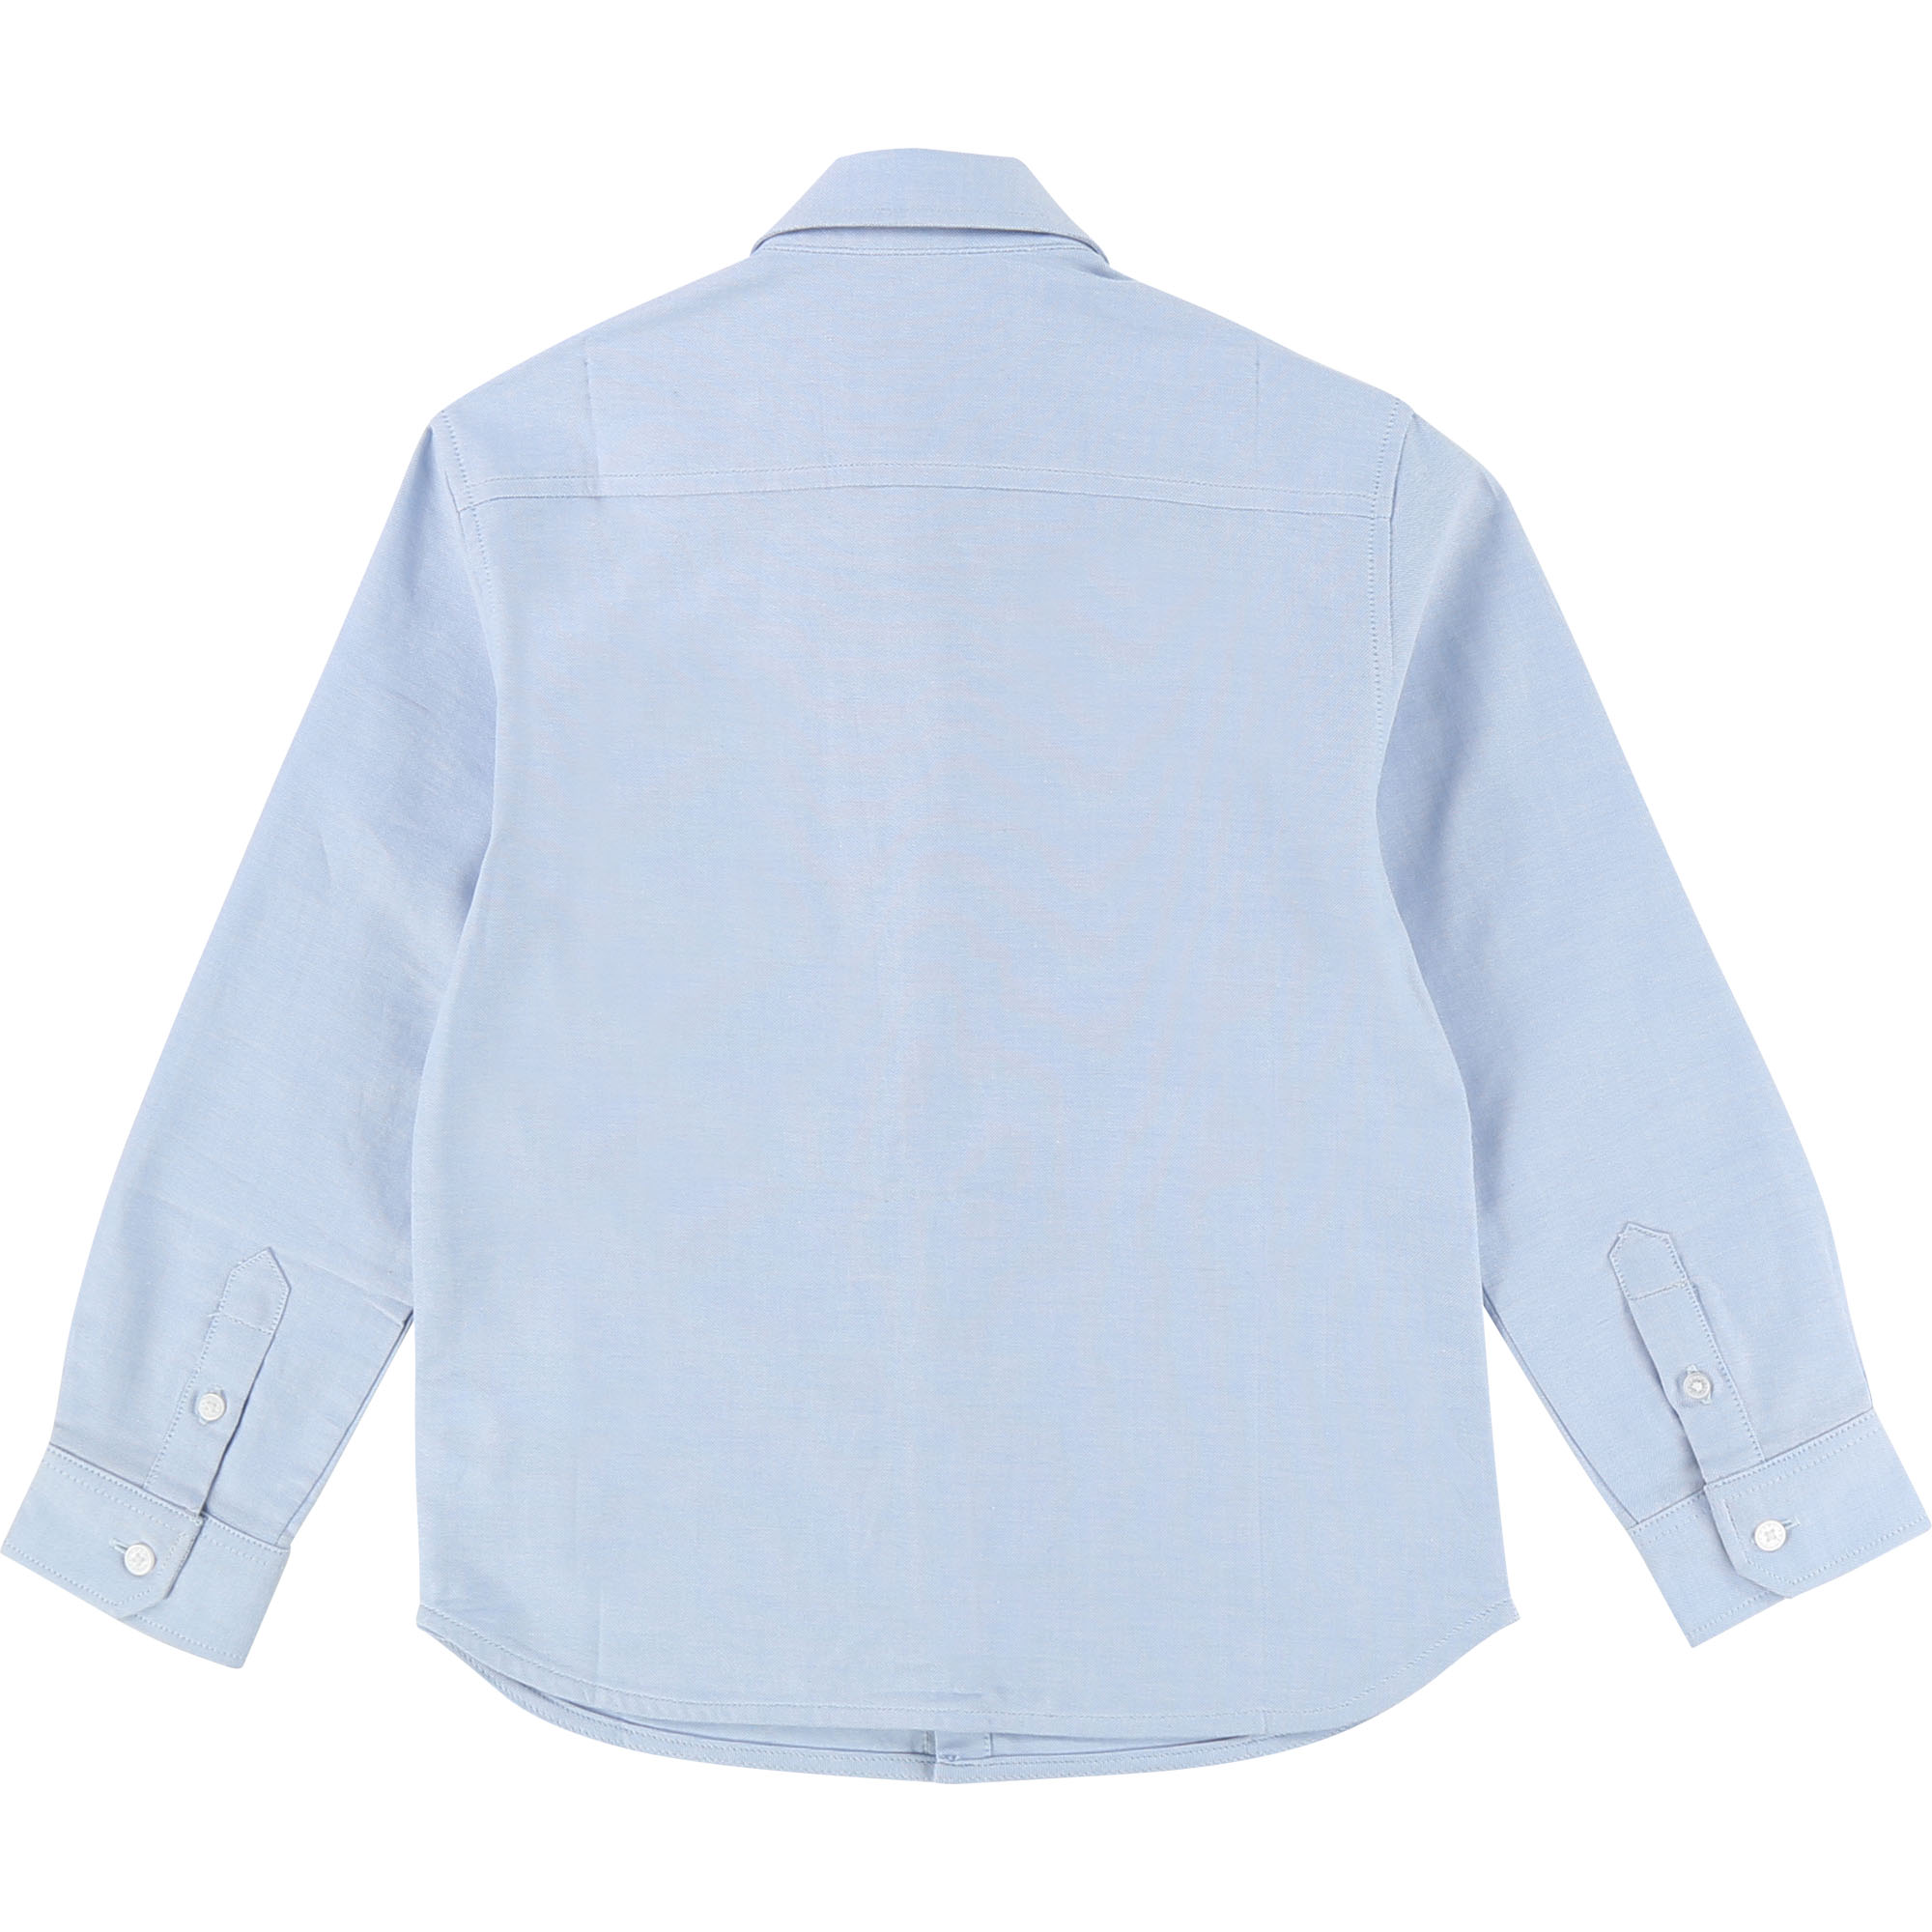 Patch shirt THE MARC JACOBS for BOY